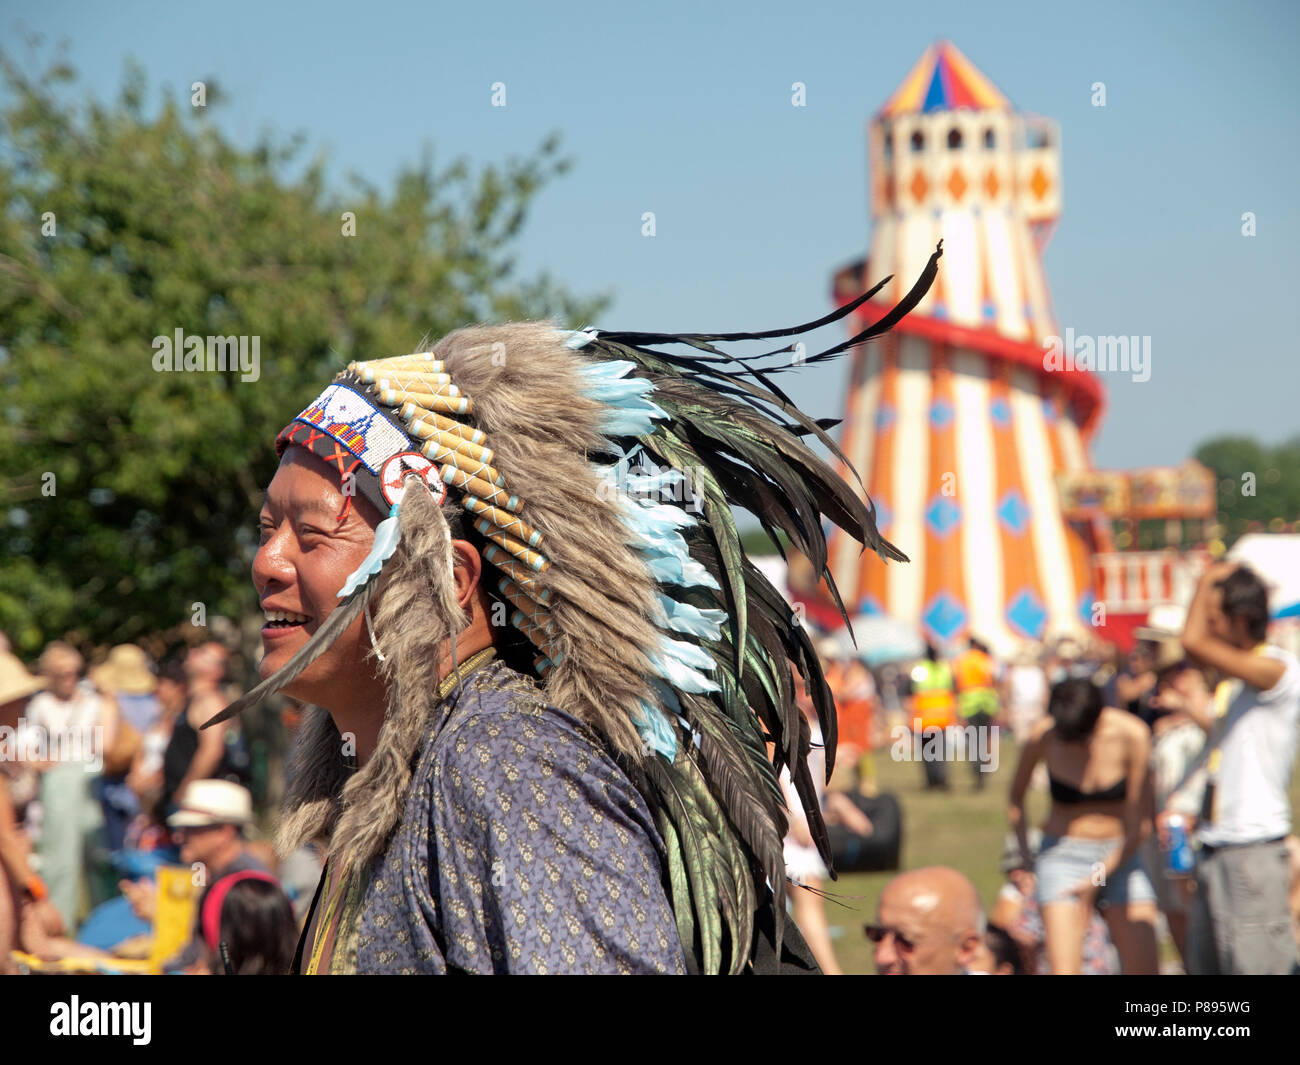 An Indian headdress is worn by a visitor to Love Supreme, an English music festival - Stock Image